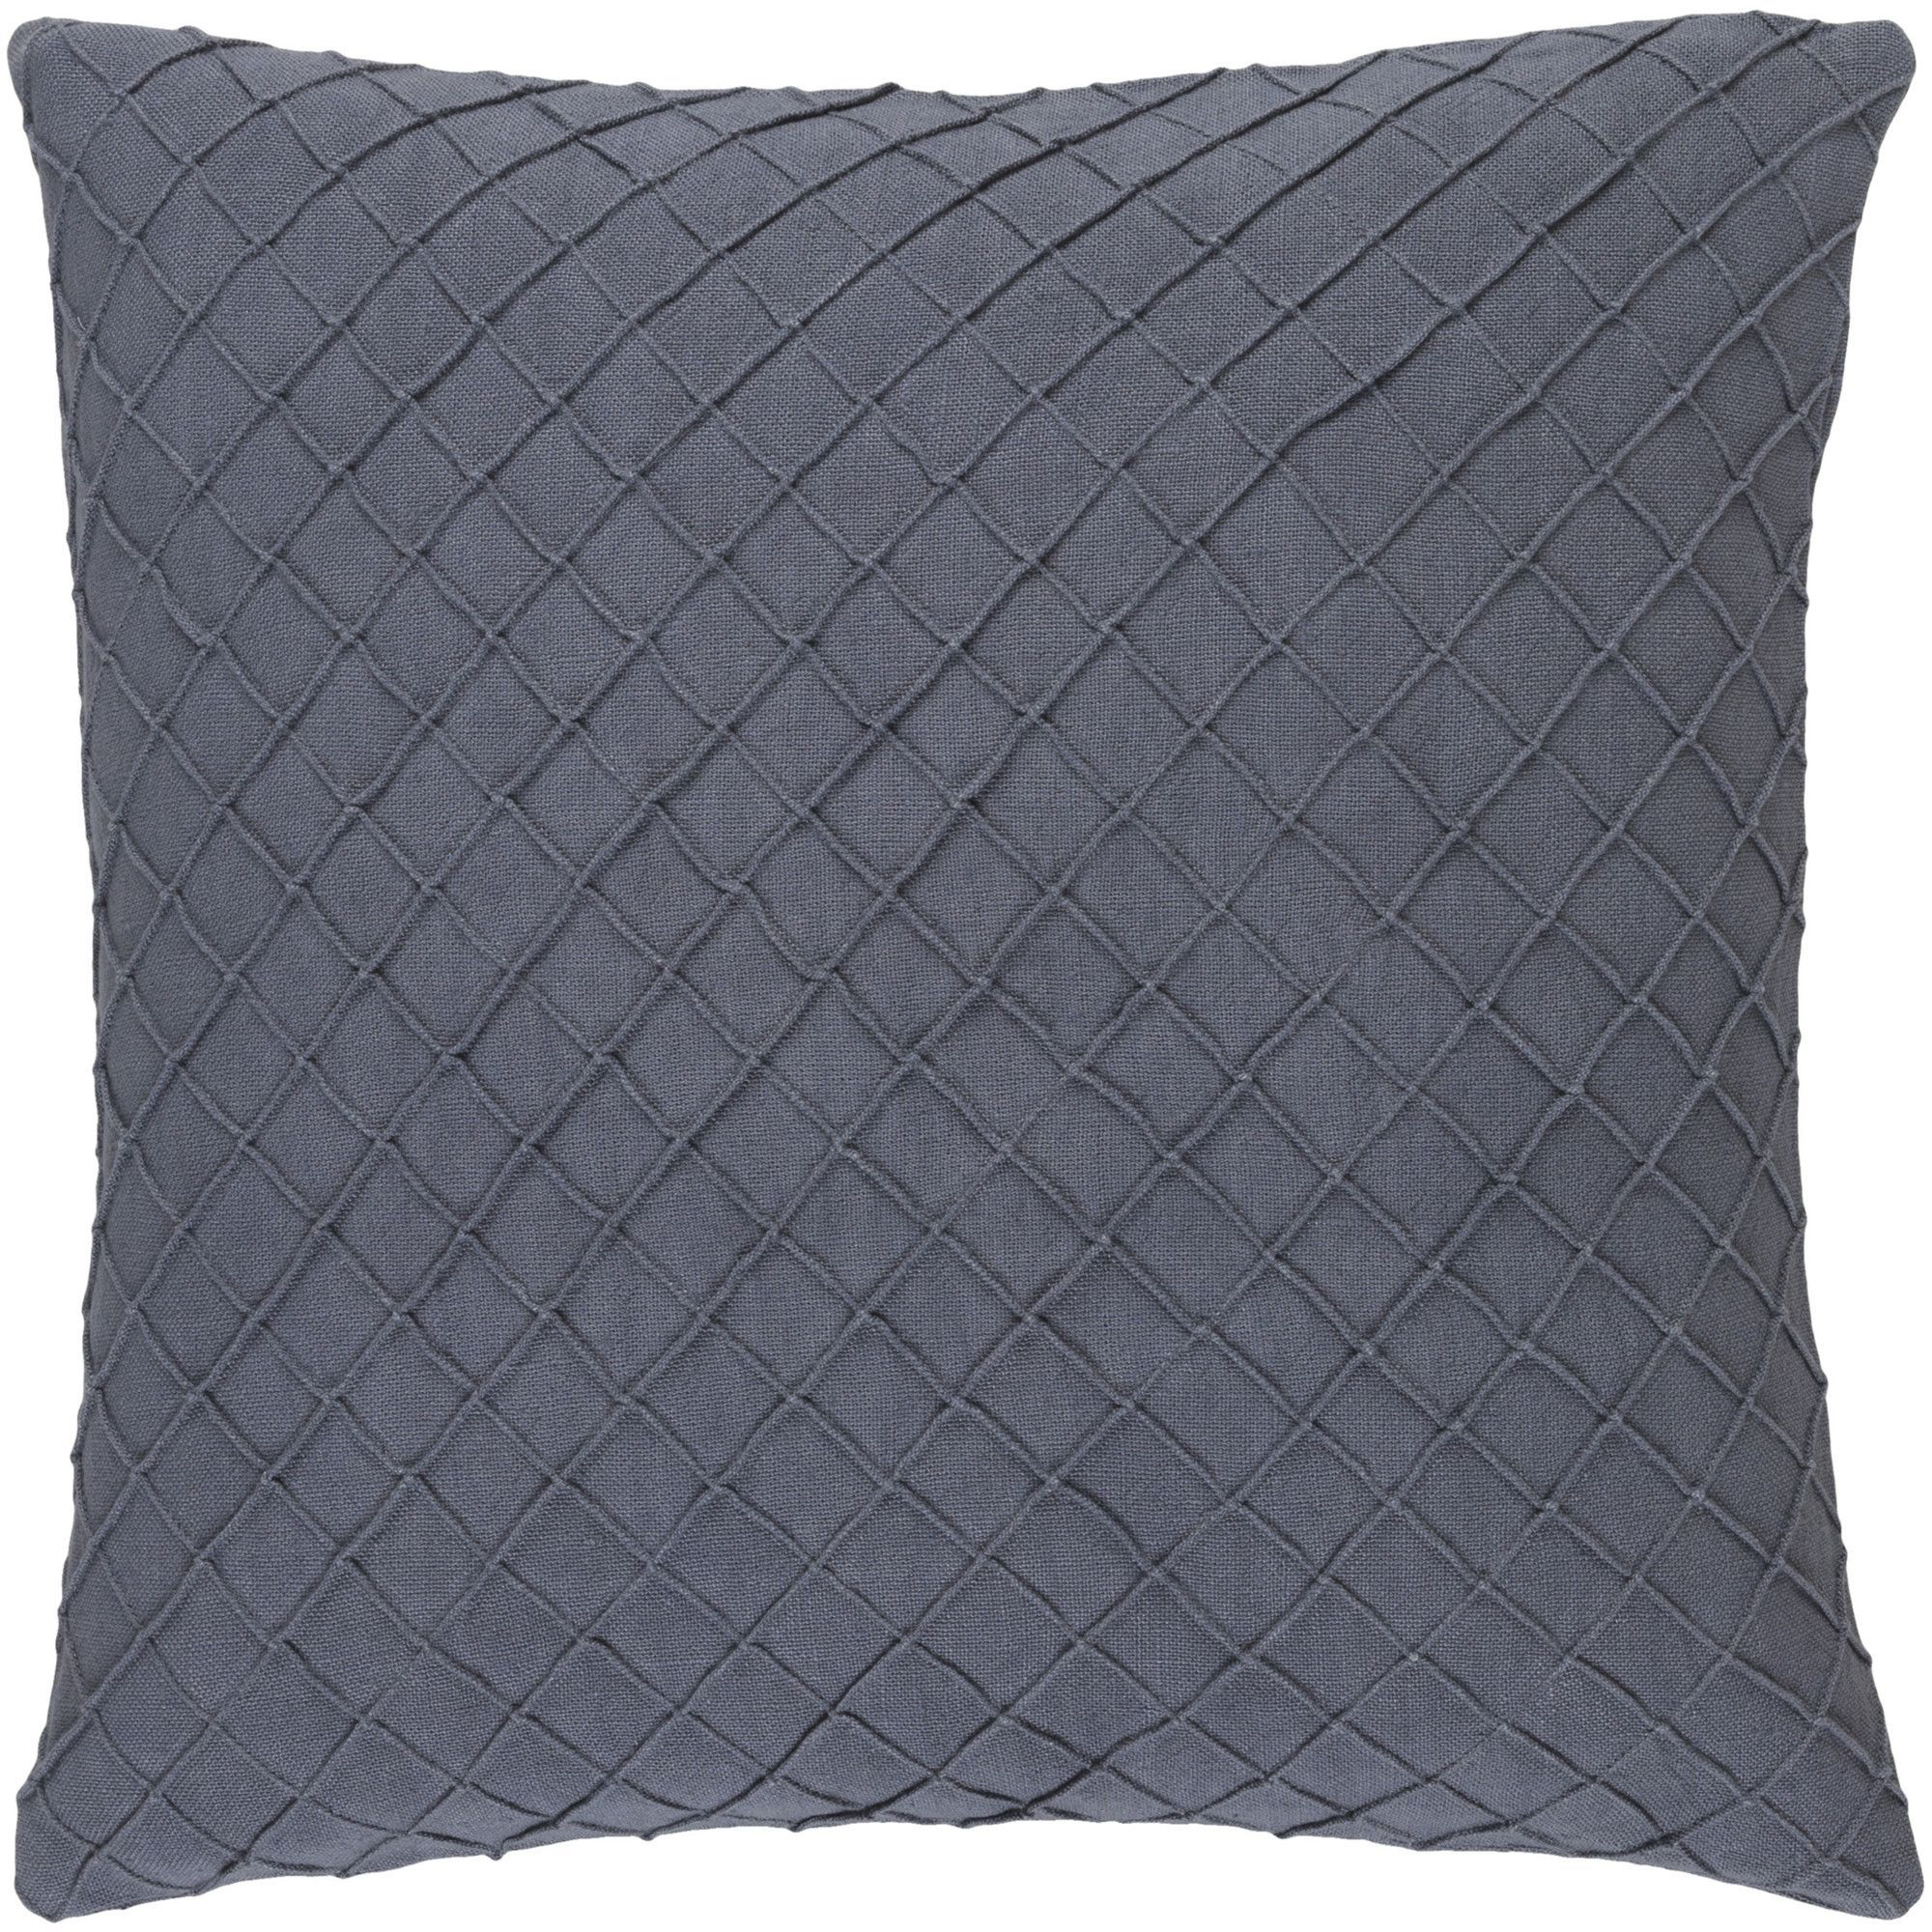 Warwick 100% Linen Throw Pillow Cover